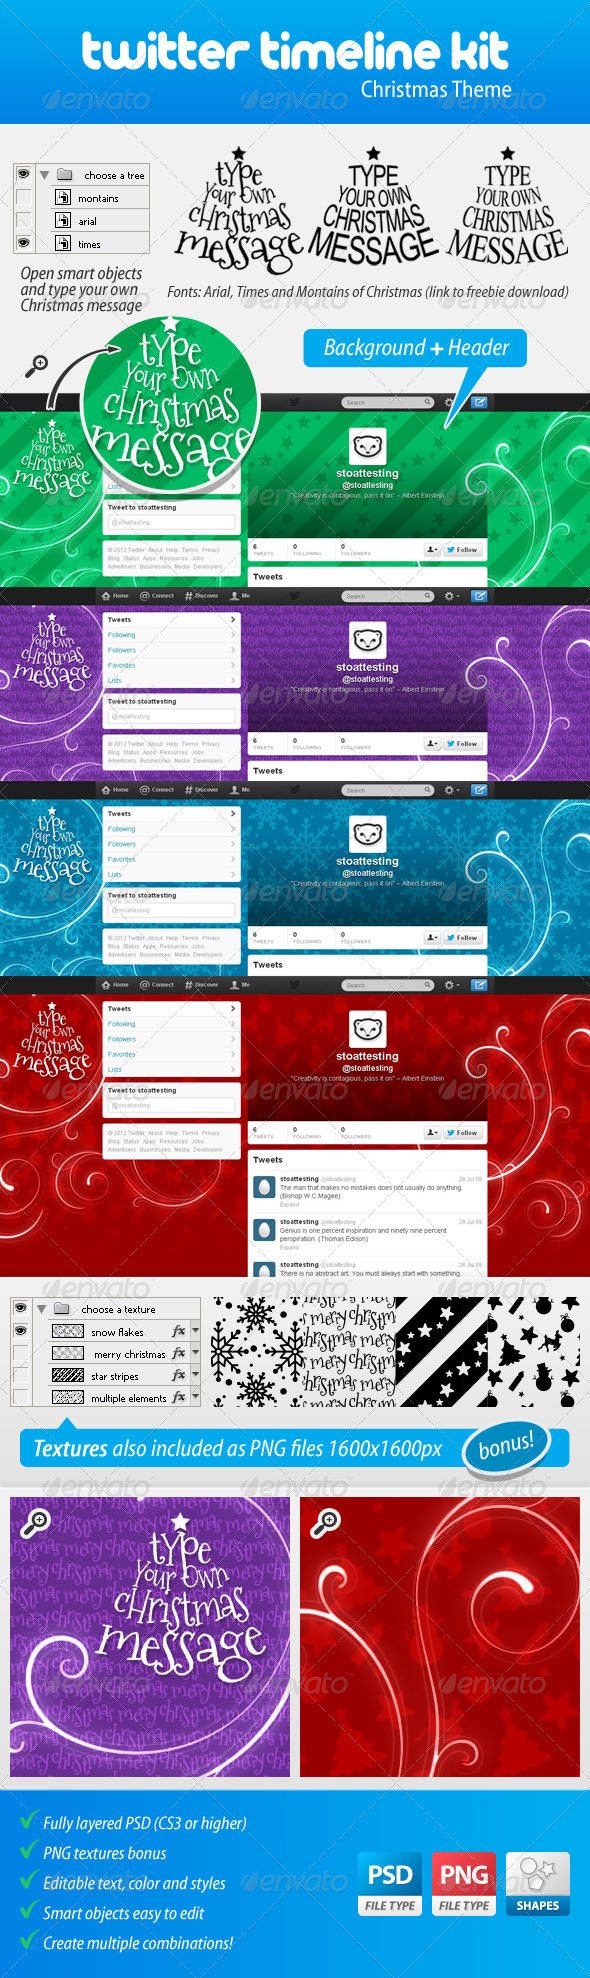 GraphicRiver Twitter Background Kit Christmas Theme 3571494